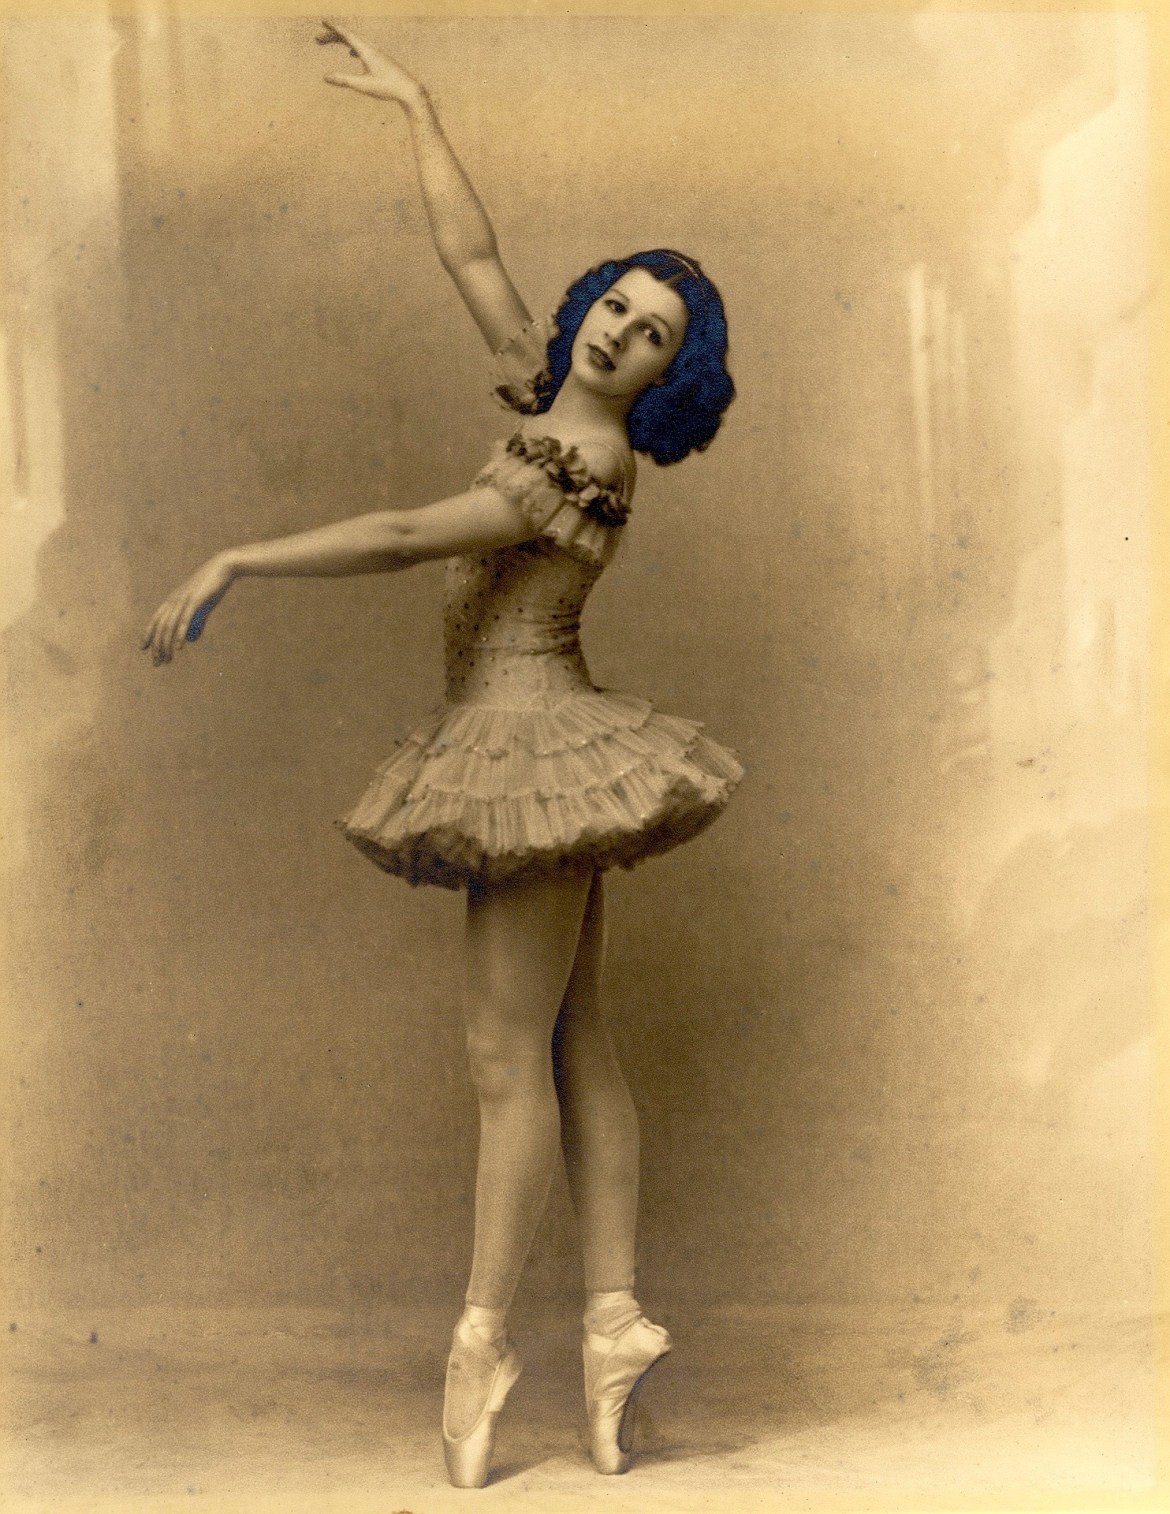 The new slippers with flat bottoms became extremely popular, allowing dancers to expand their skills.